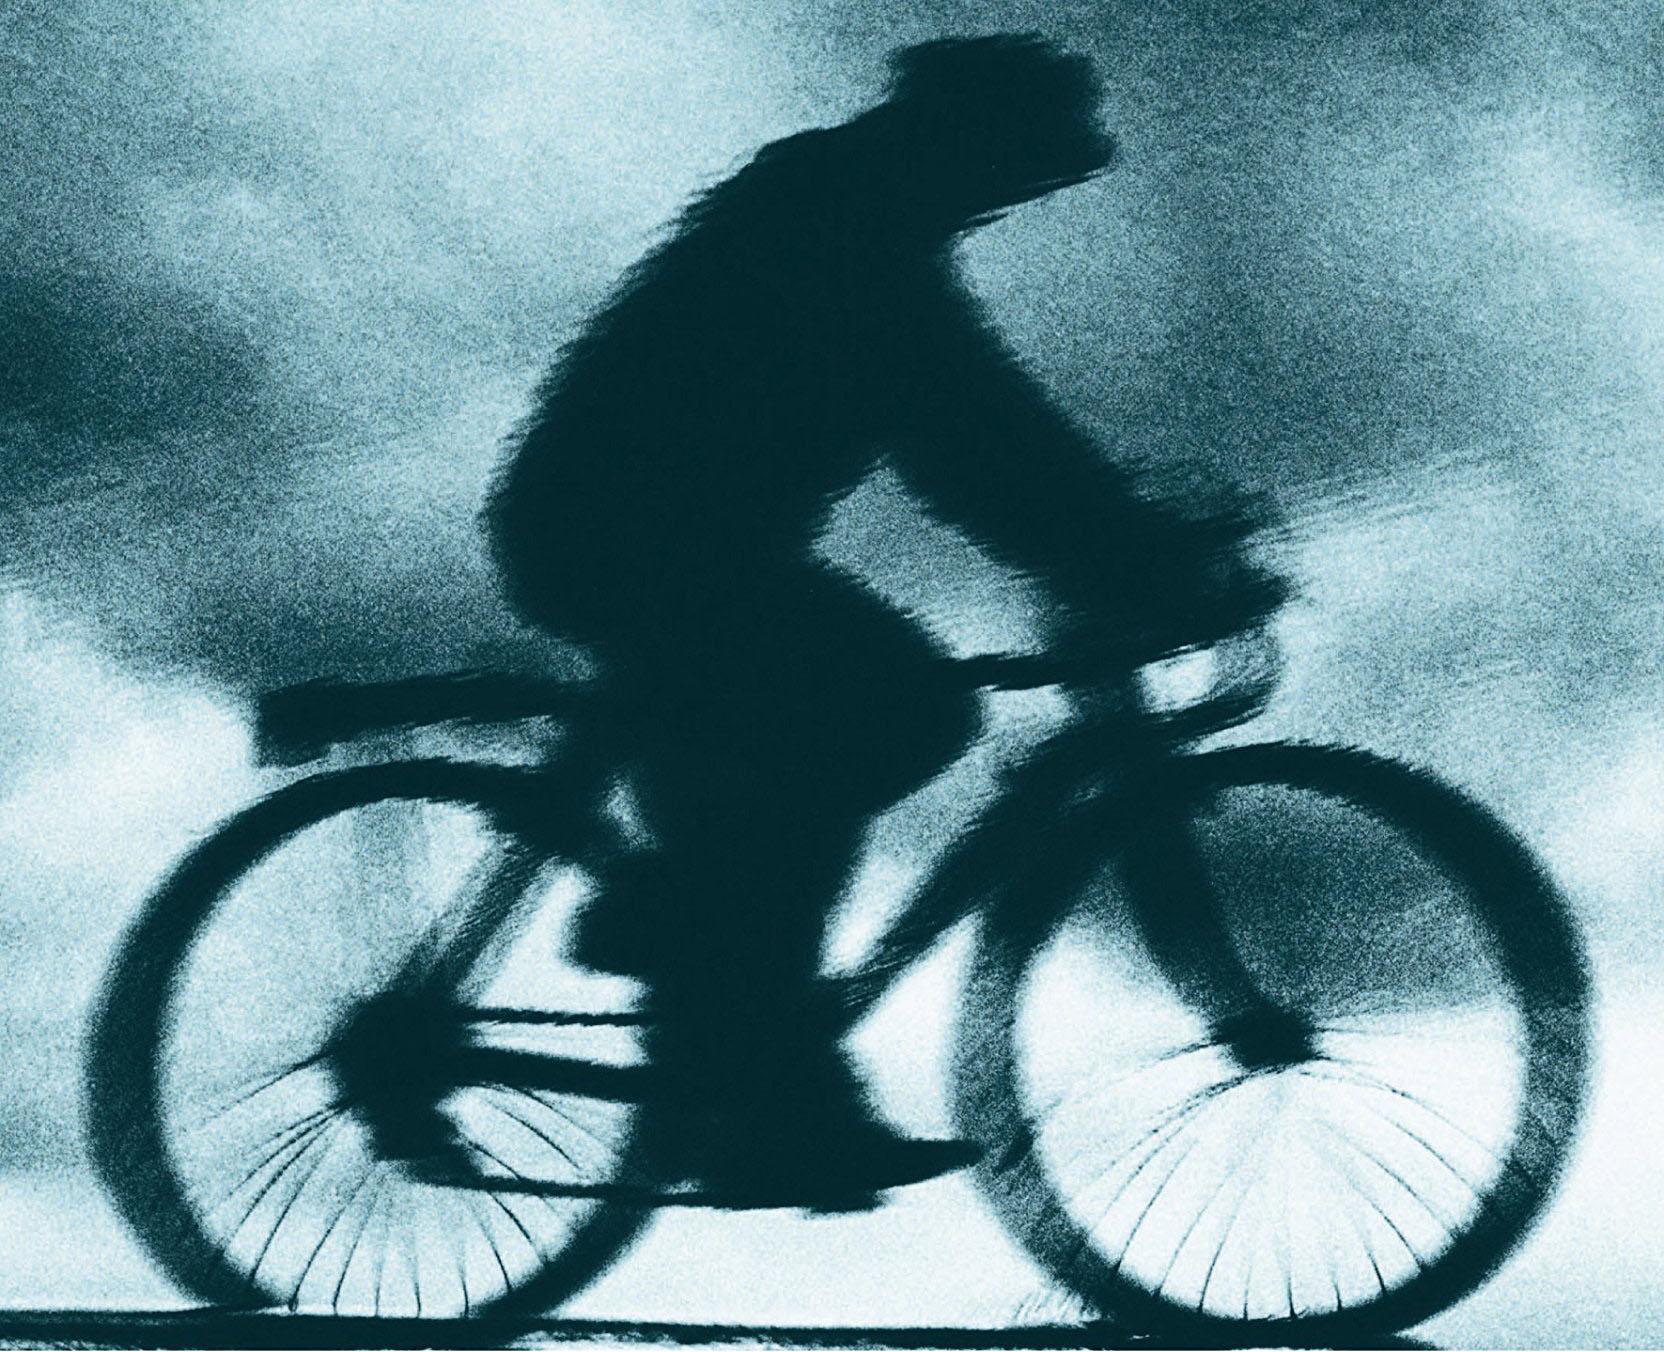 Blurred photo of person on bicycle